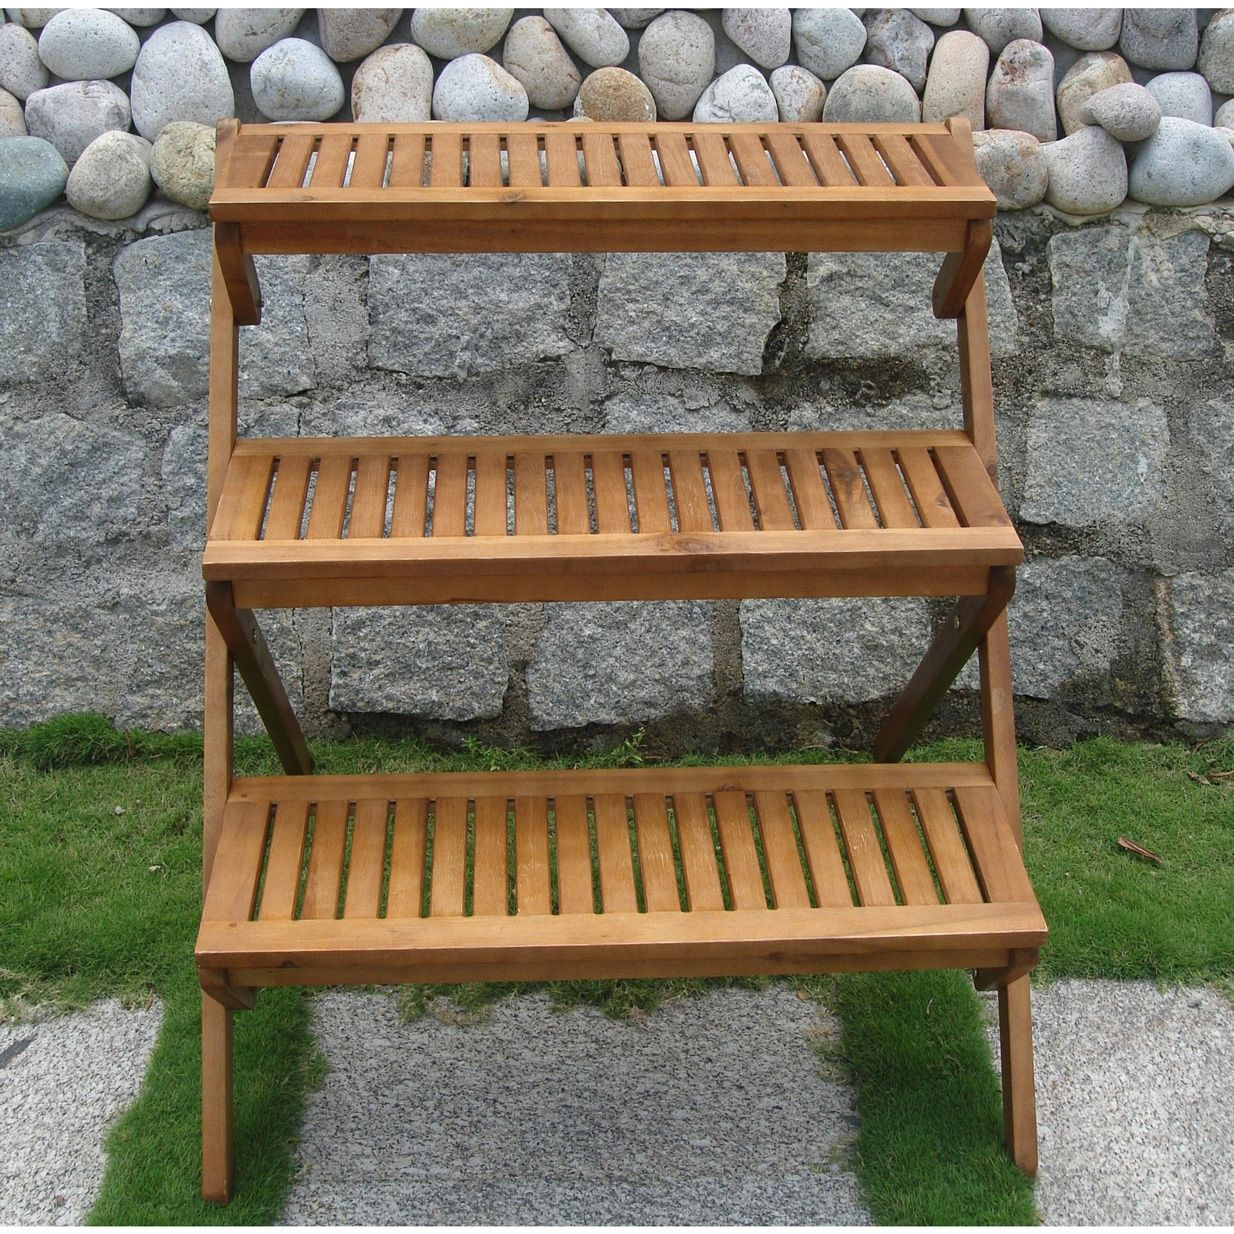 3 Tier Wooden Garden Cart Planter Gardening Pinterest